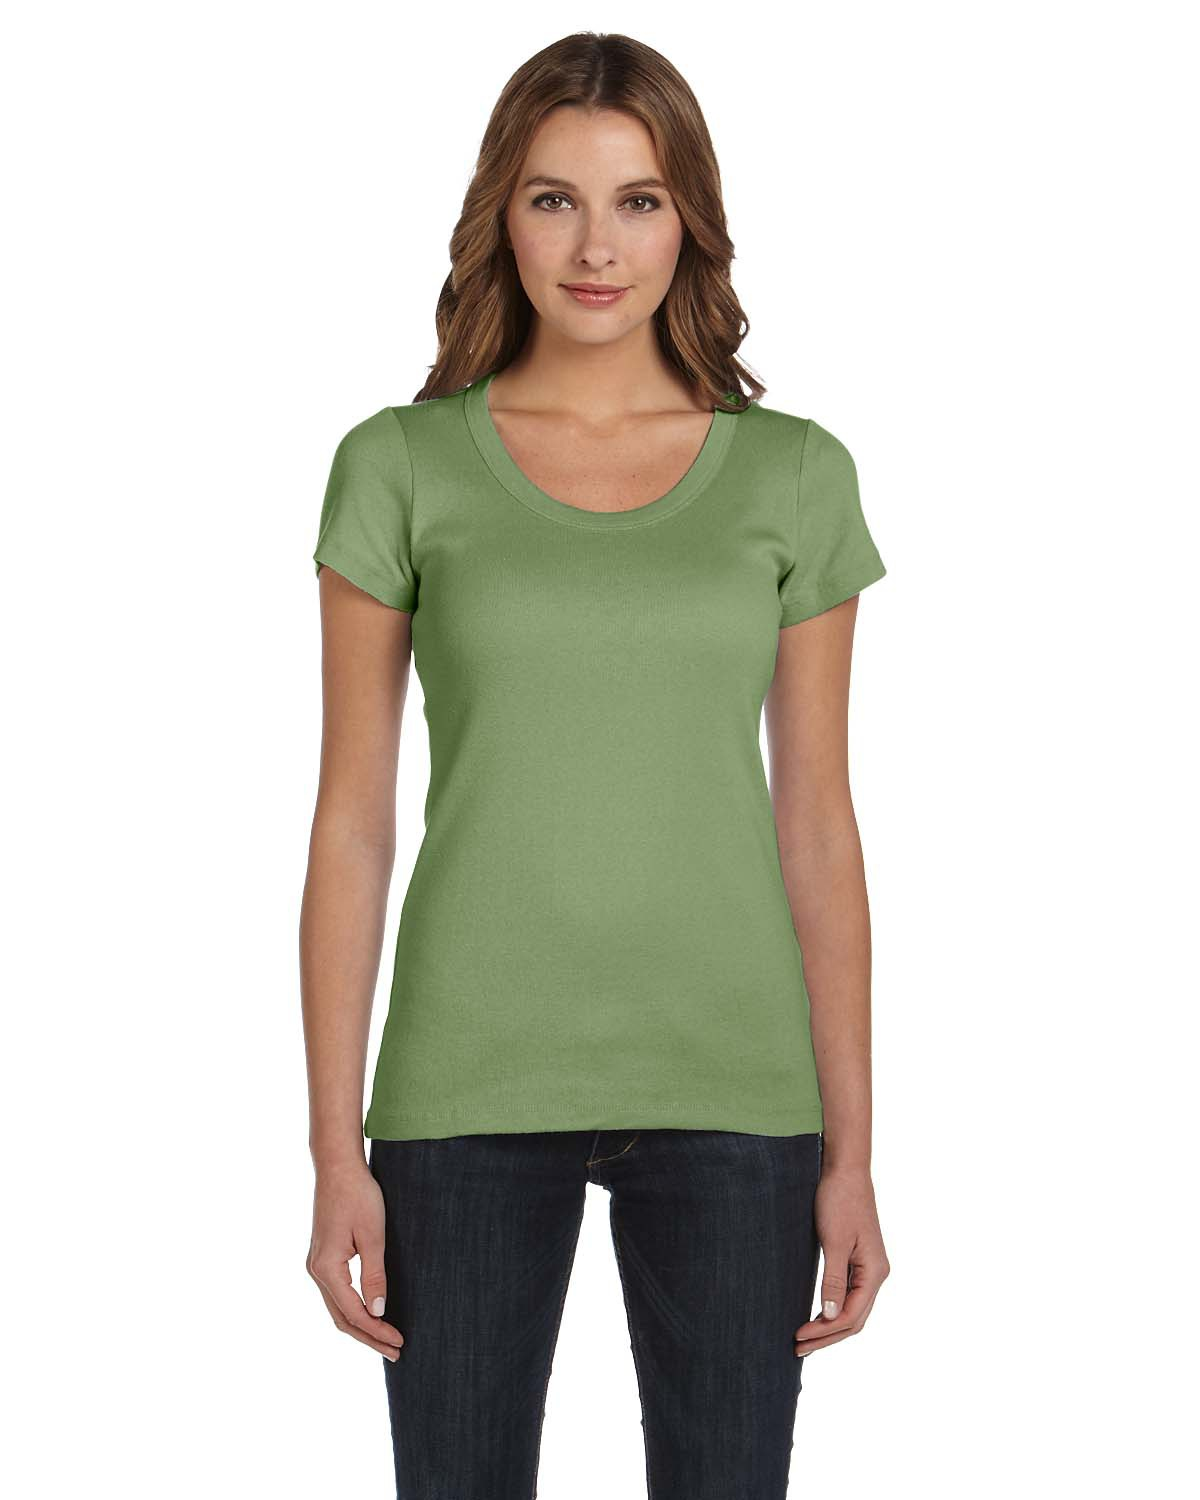 bella 1003 Ladies' 1x1 Short Sleeve Scoop Neck T-Shirt